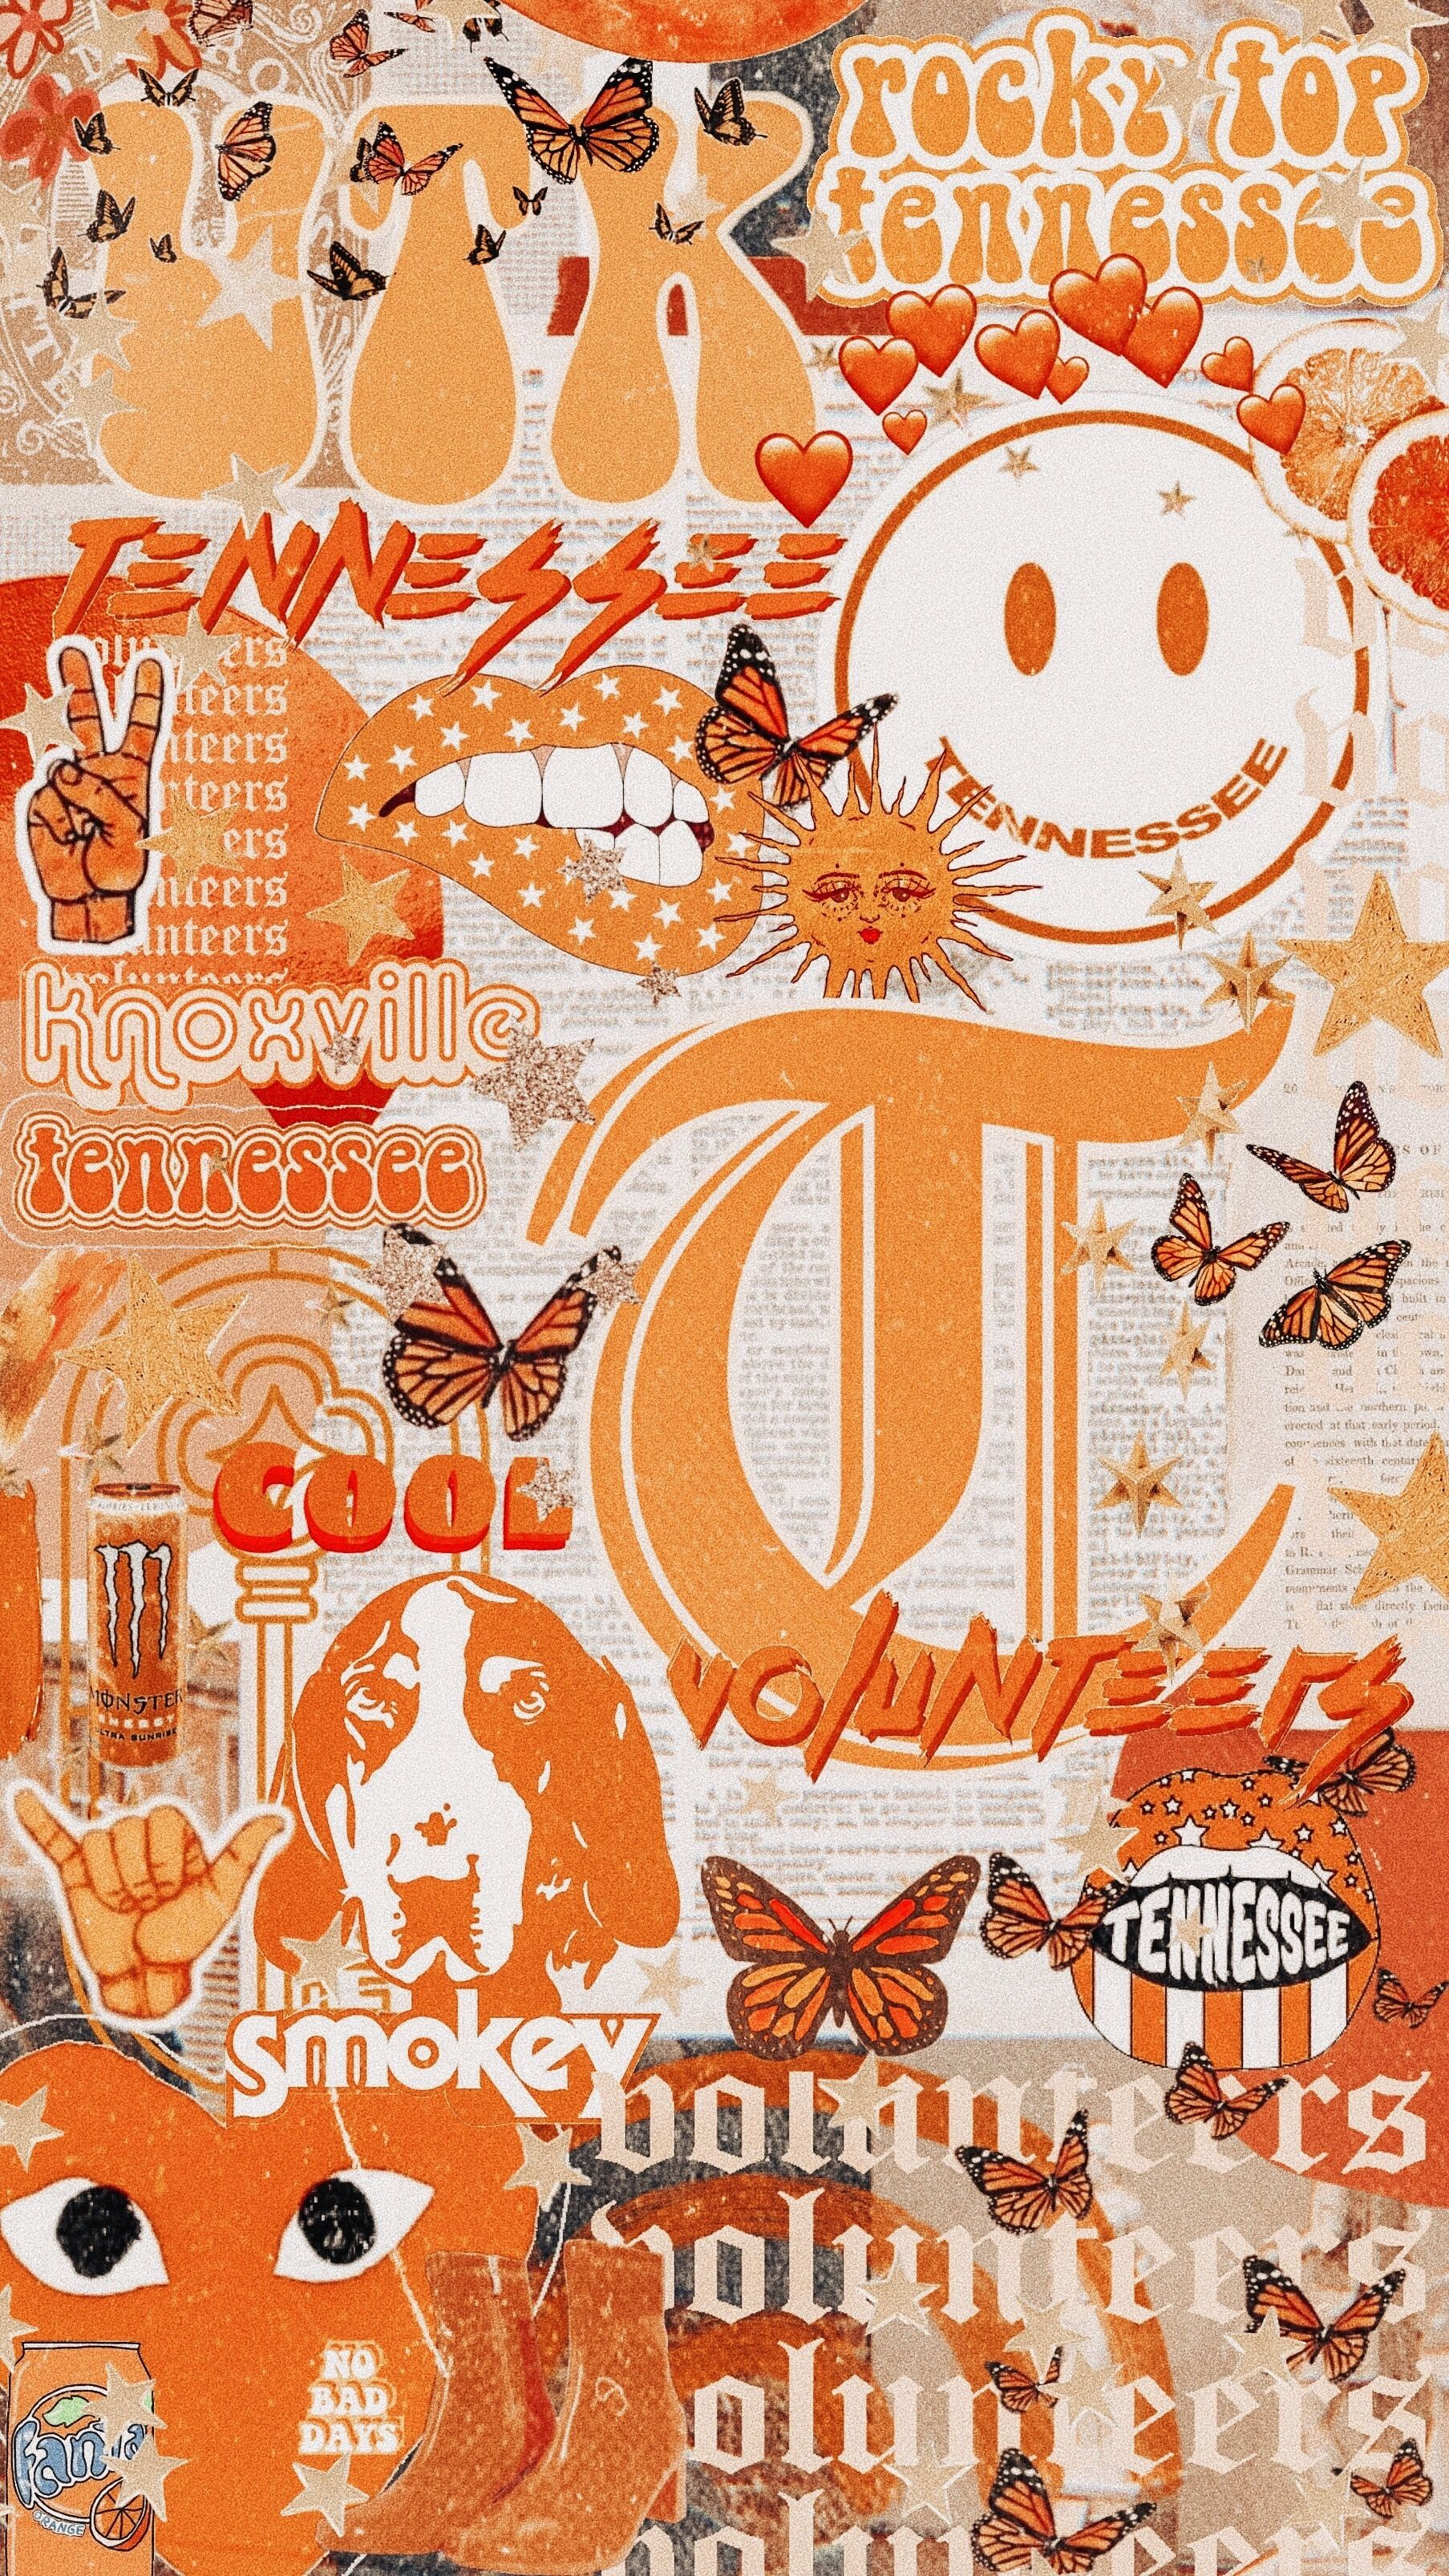 University Of Tennessee Iphone Wallpaper Vintage Tennessee Aesthetic Wallpaper Wall Collage